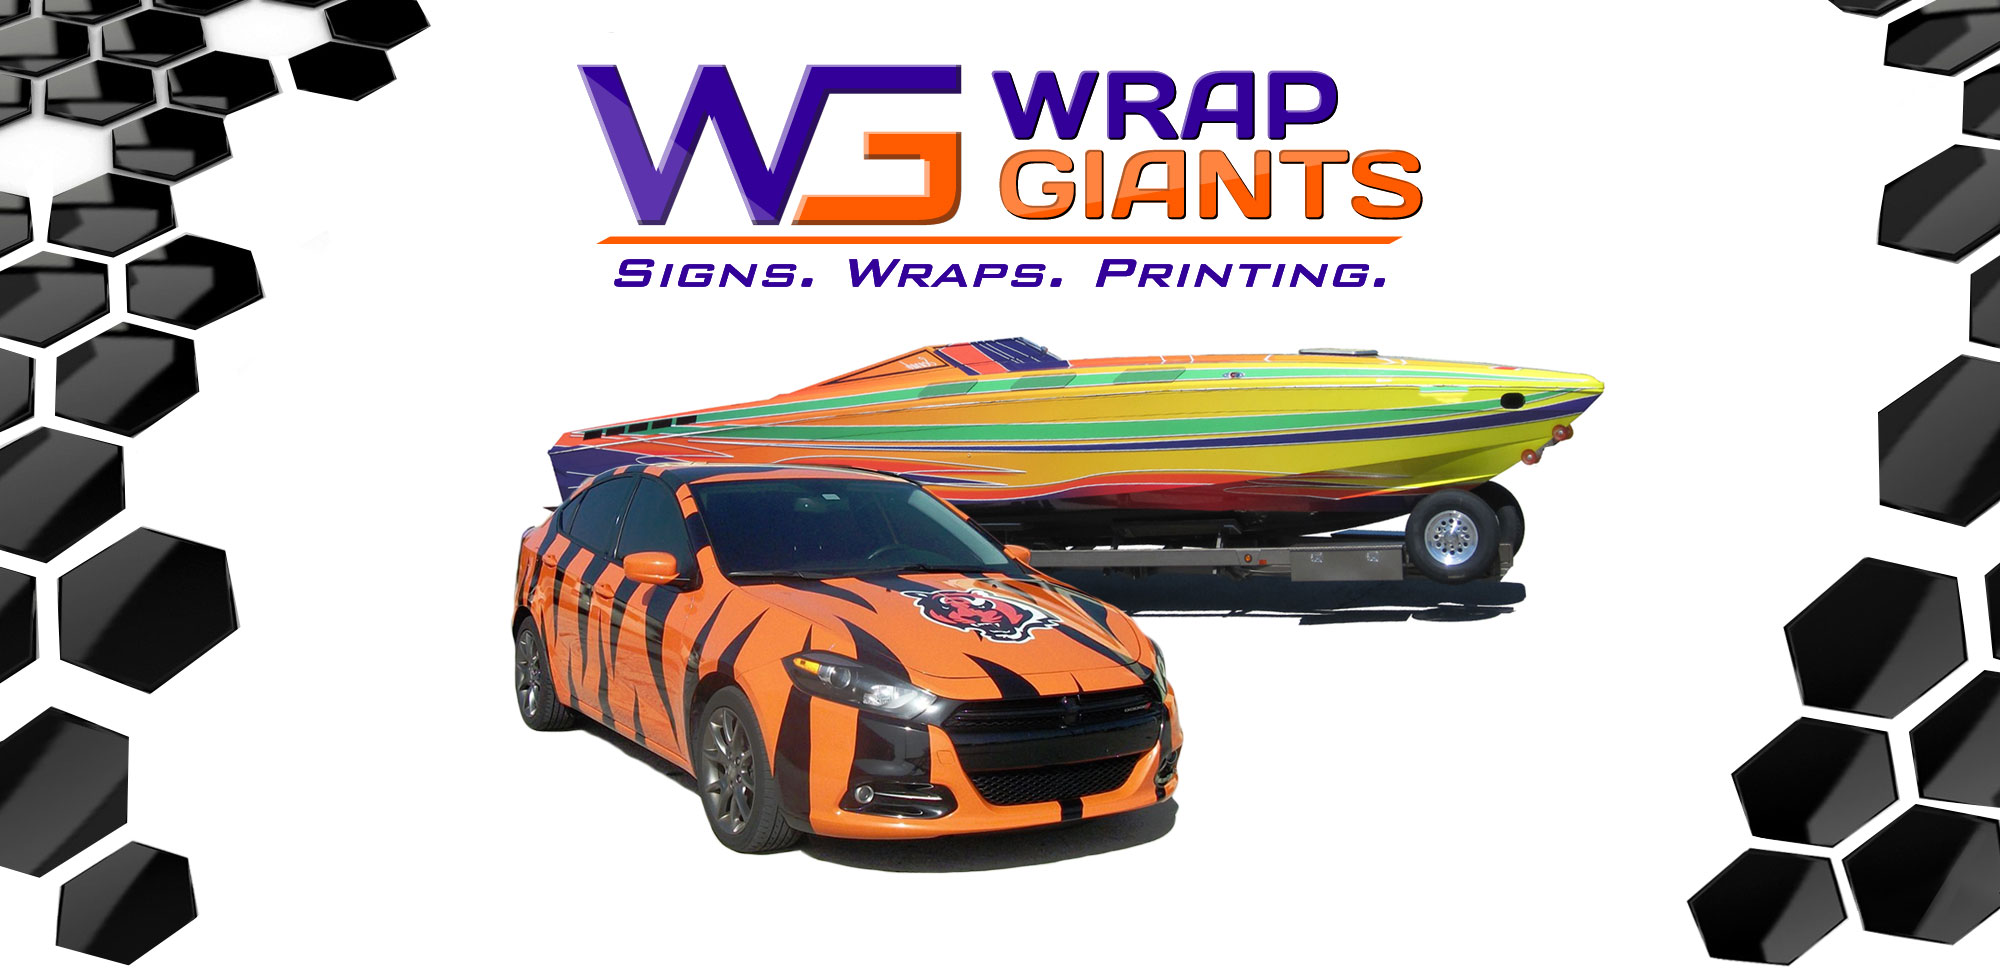 Wrap Giants Advertising, Brevard FL Car Wraps, Truck Wraps